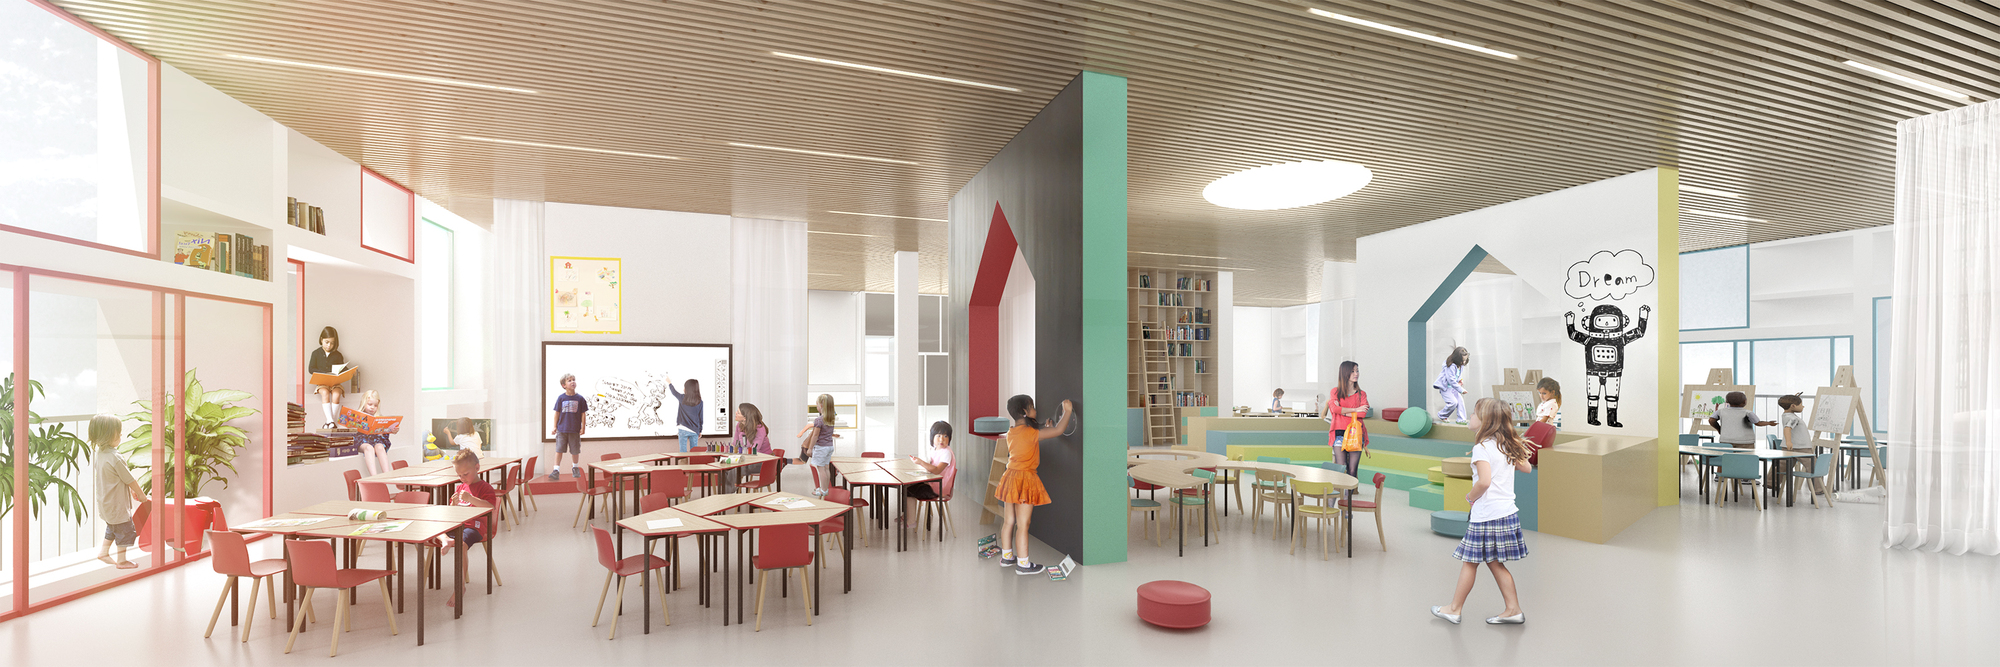 Virtual Classroom Architecture Design ~ Gallery of henning larsen architects designs french